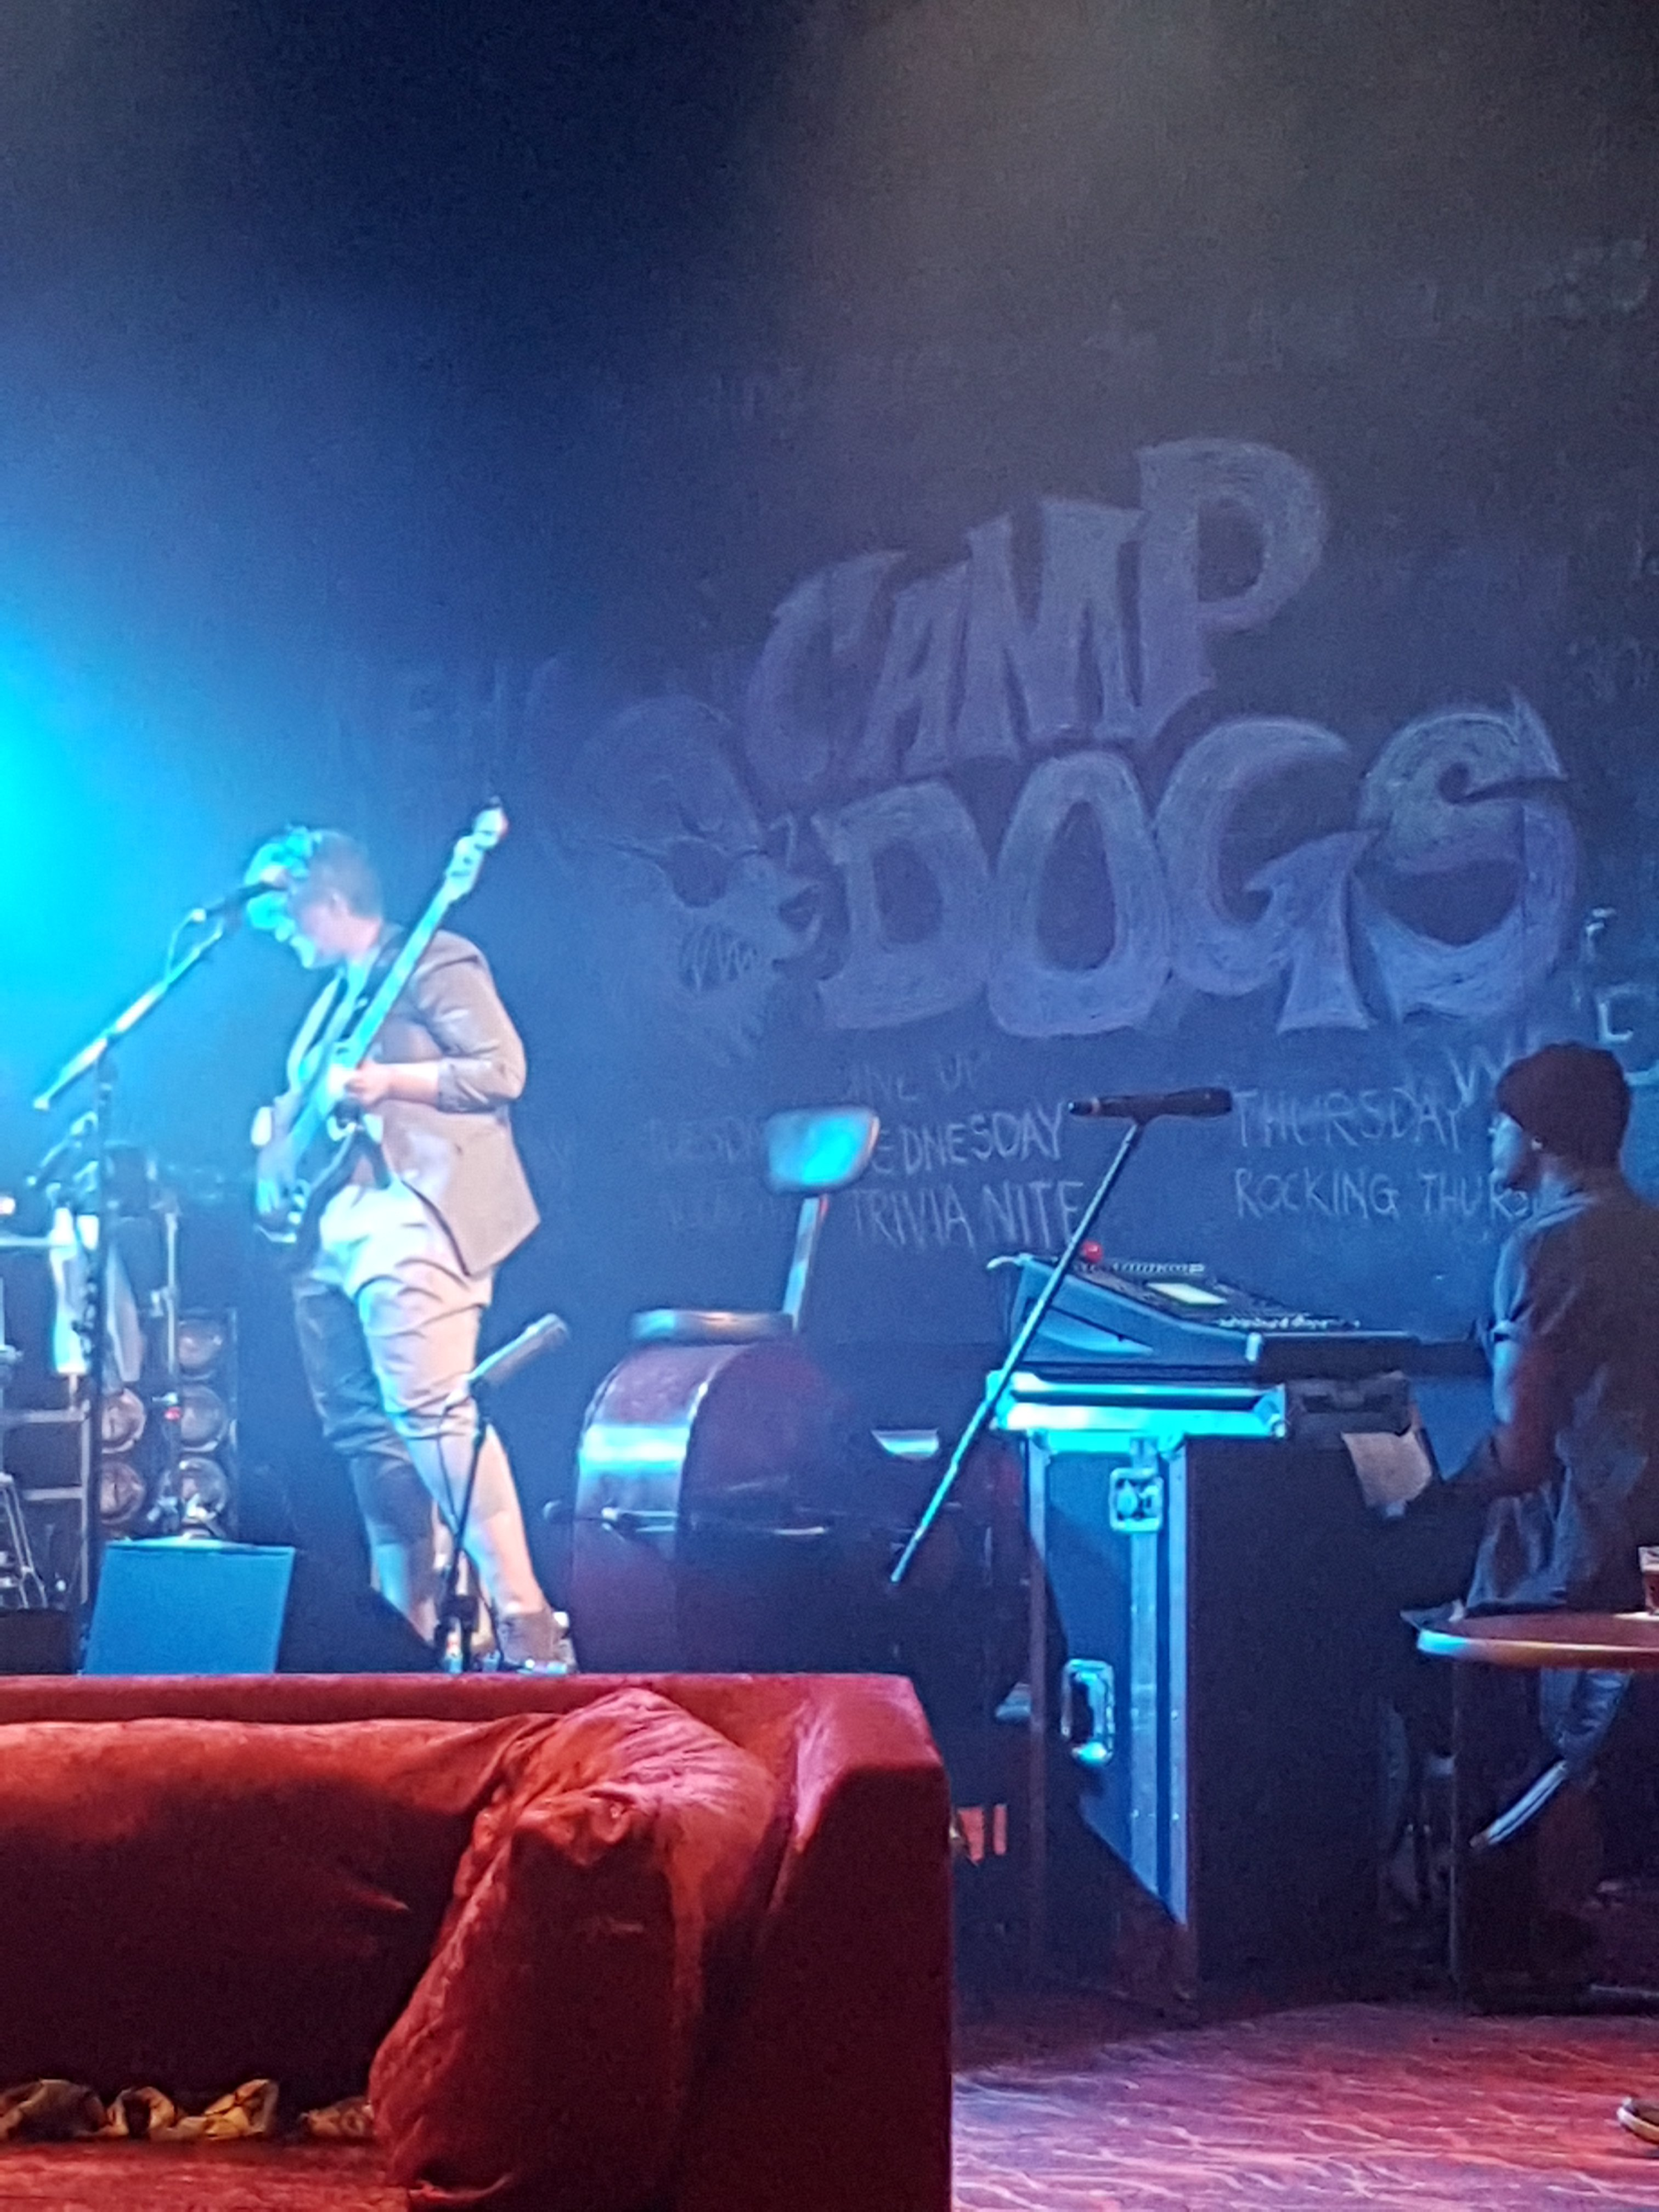 A White-presenting woman with short hair and a suit jacket is playing on a bass guitar. An Aboriginal man is wearing a beany and sits behind a keyboard. The sign in the background shows a drawing of a large dog's face wearing sunglasses. The sign is drawn in chalk and says: Barbara & the Camp Dogs. A red velvet couch is in the foreground